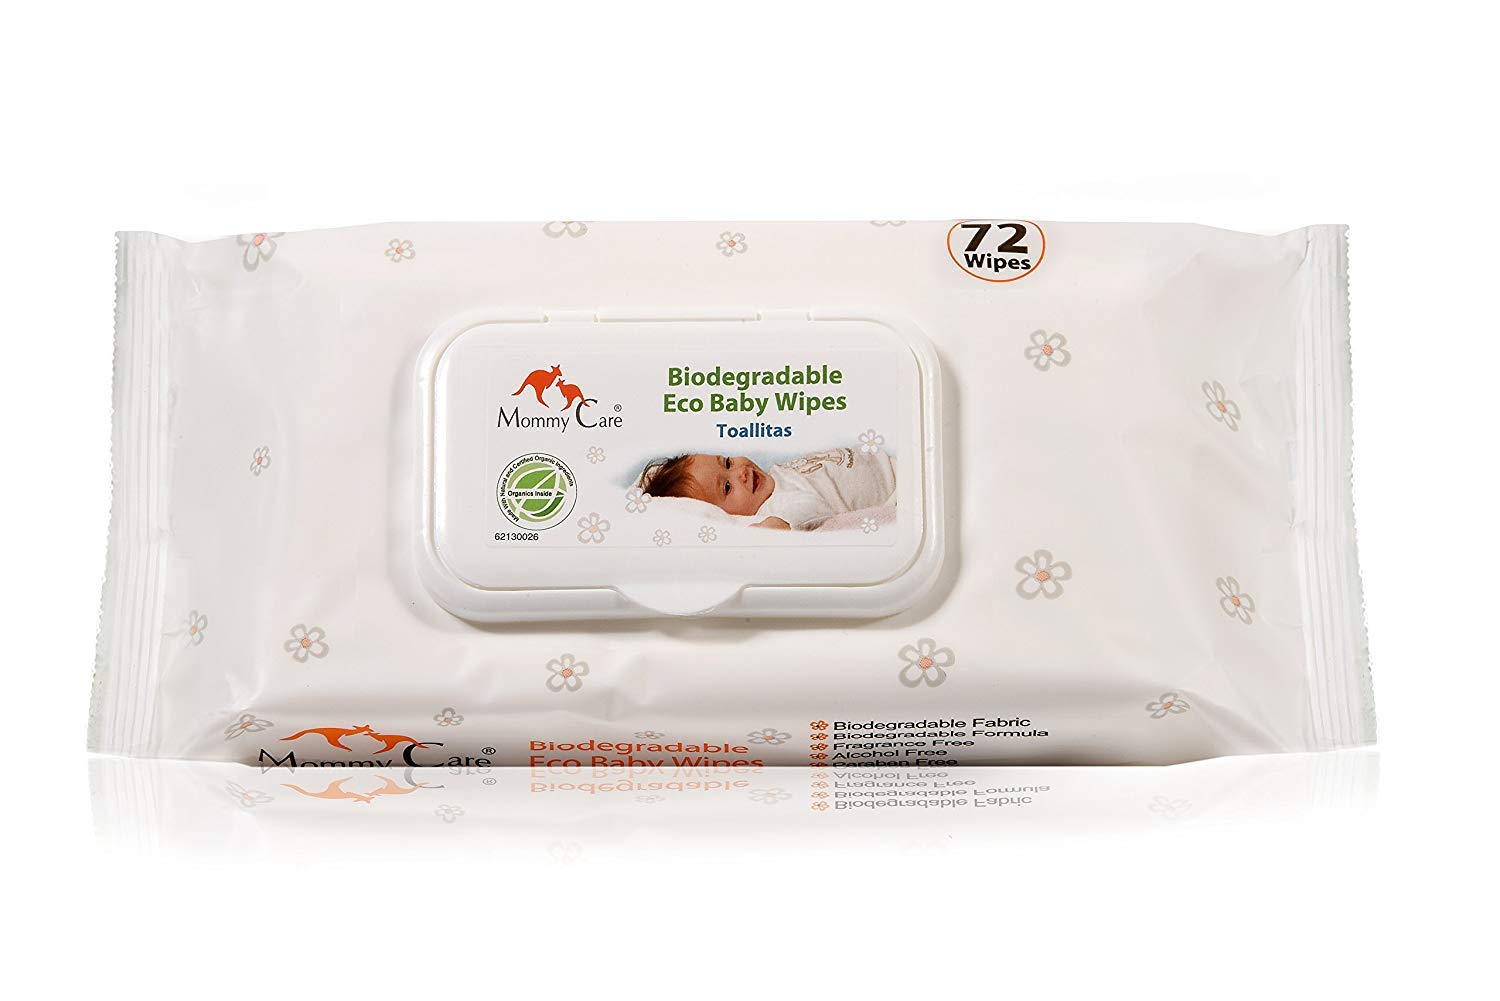 Mommy Care Organic Biodegradable Eco Baby Wipes - SLS and Paraben Free Gently Fragranced Natural Formula Perfect for Babies Sensitive Skin. Great as Hand and Face Sanitizer 1 Pack 72 Count